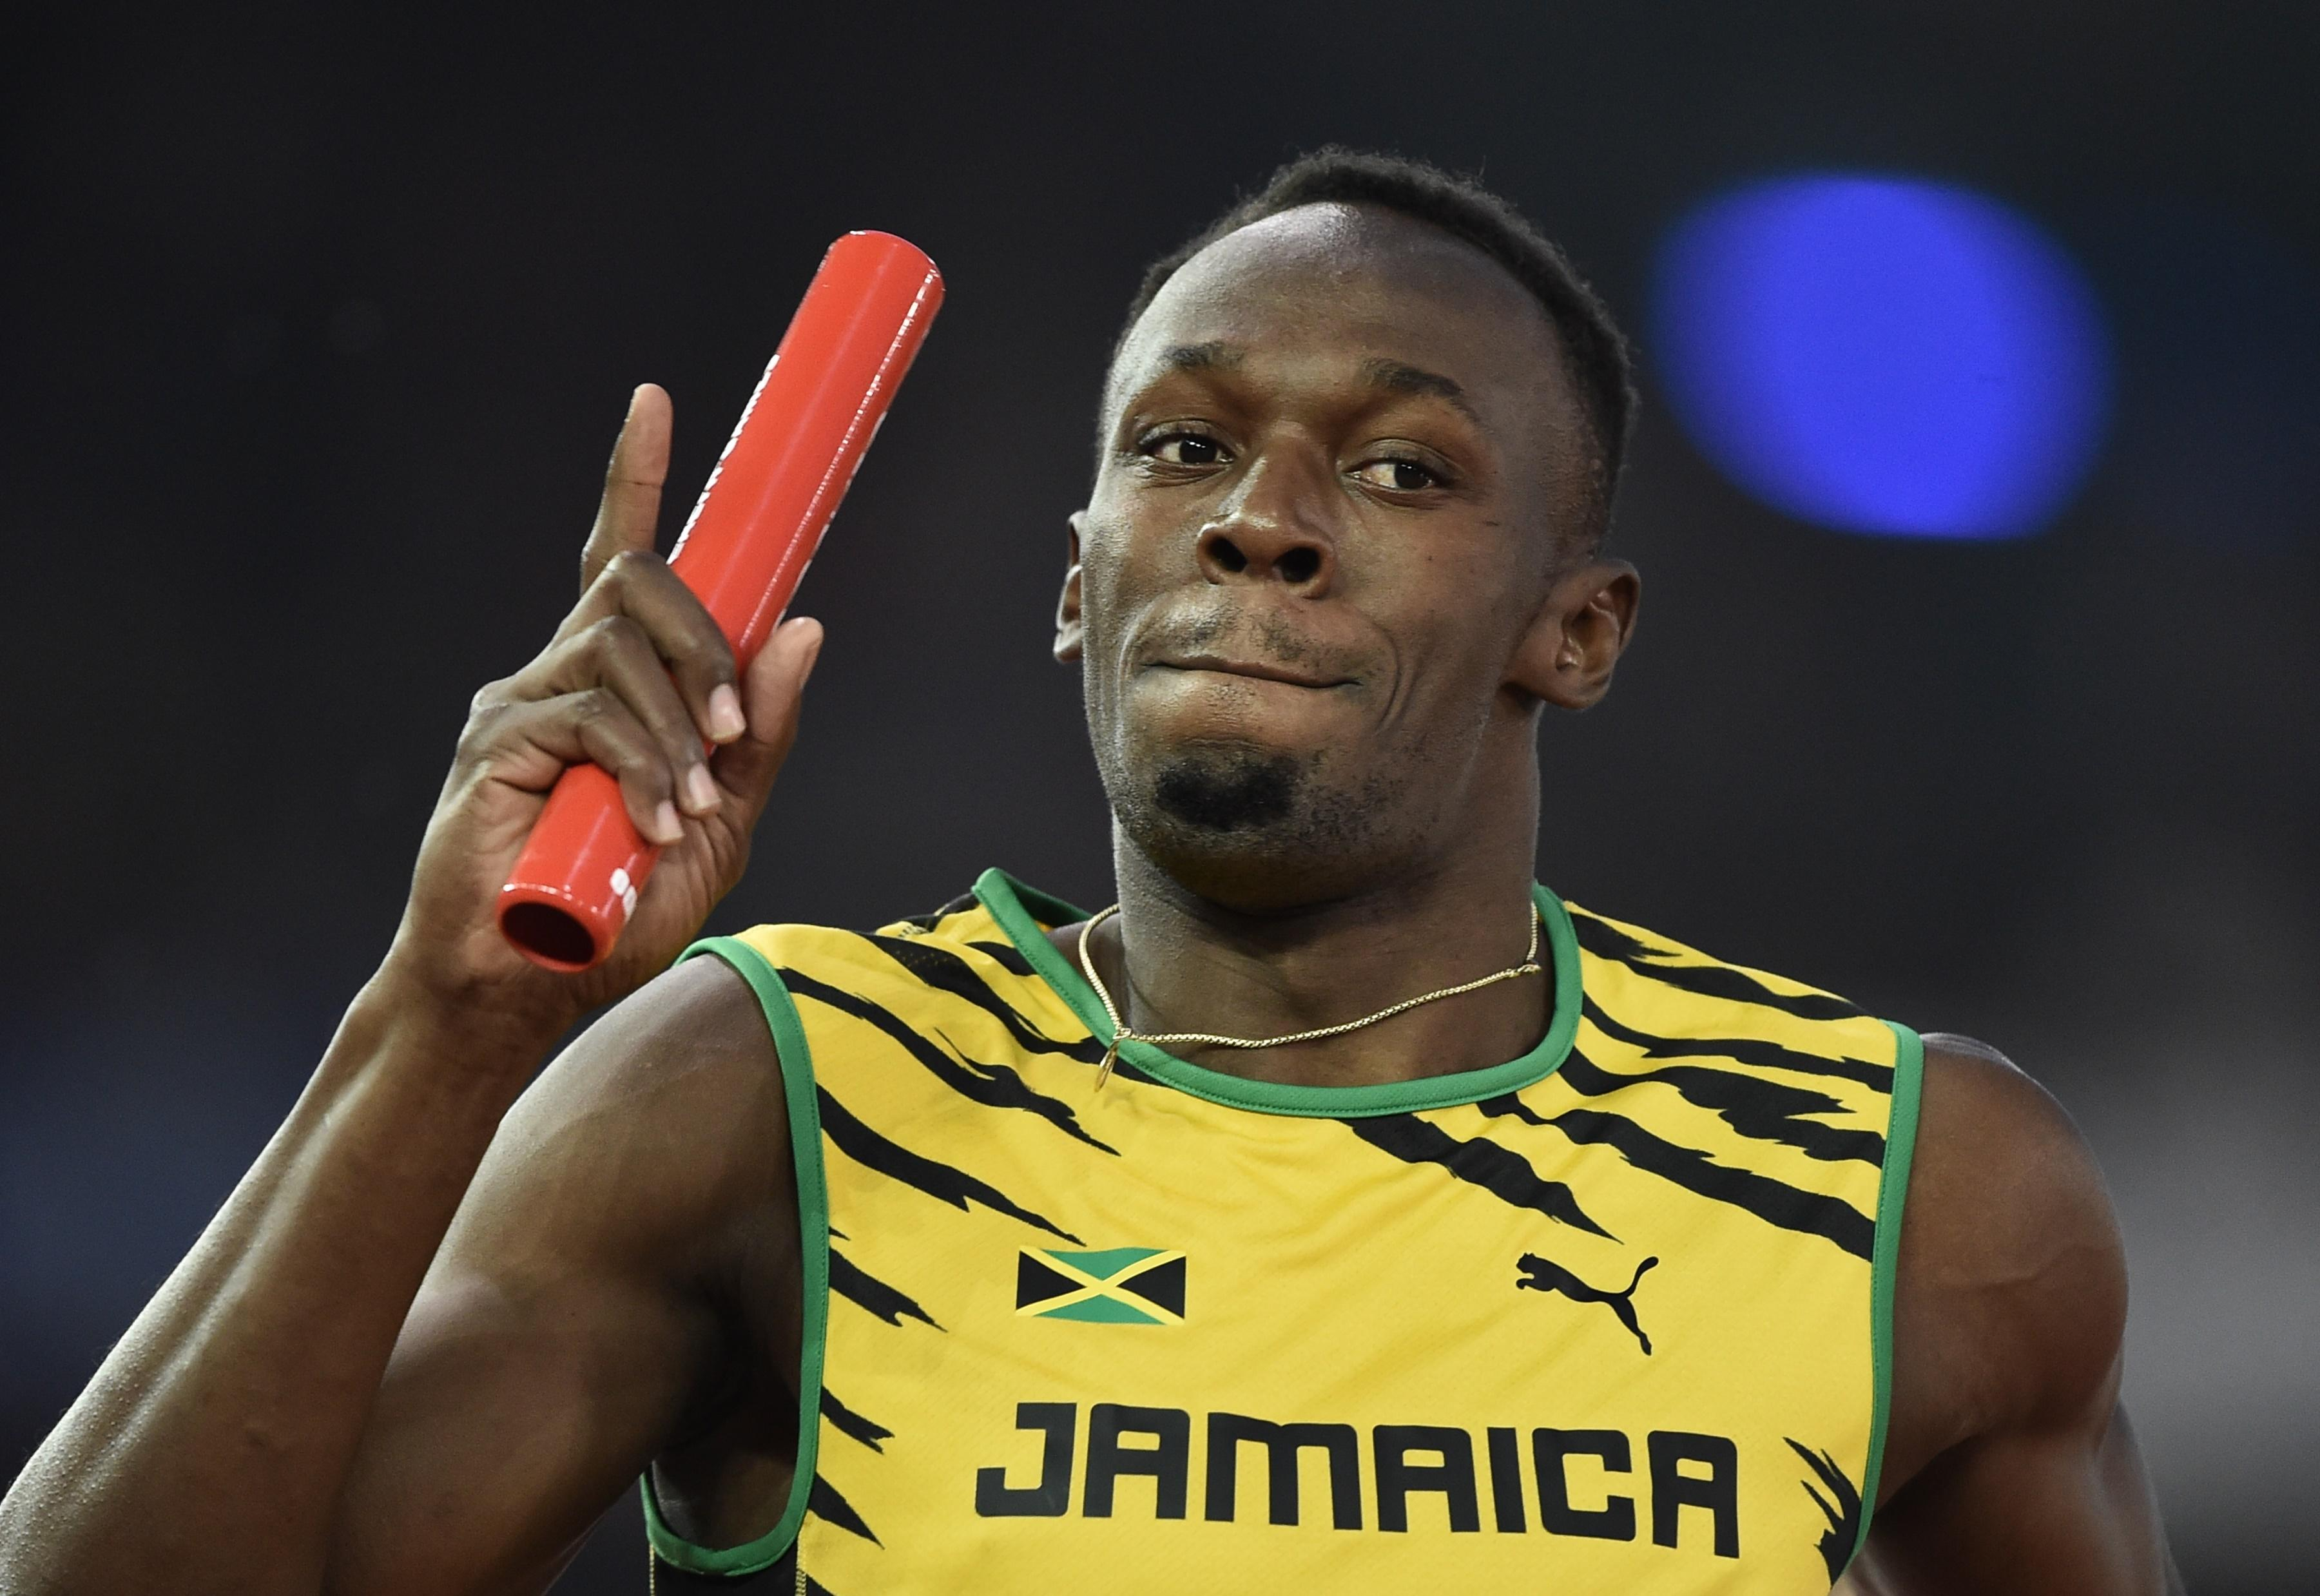 Bolt makes surprise relay start to season